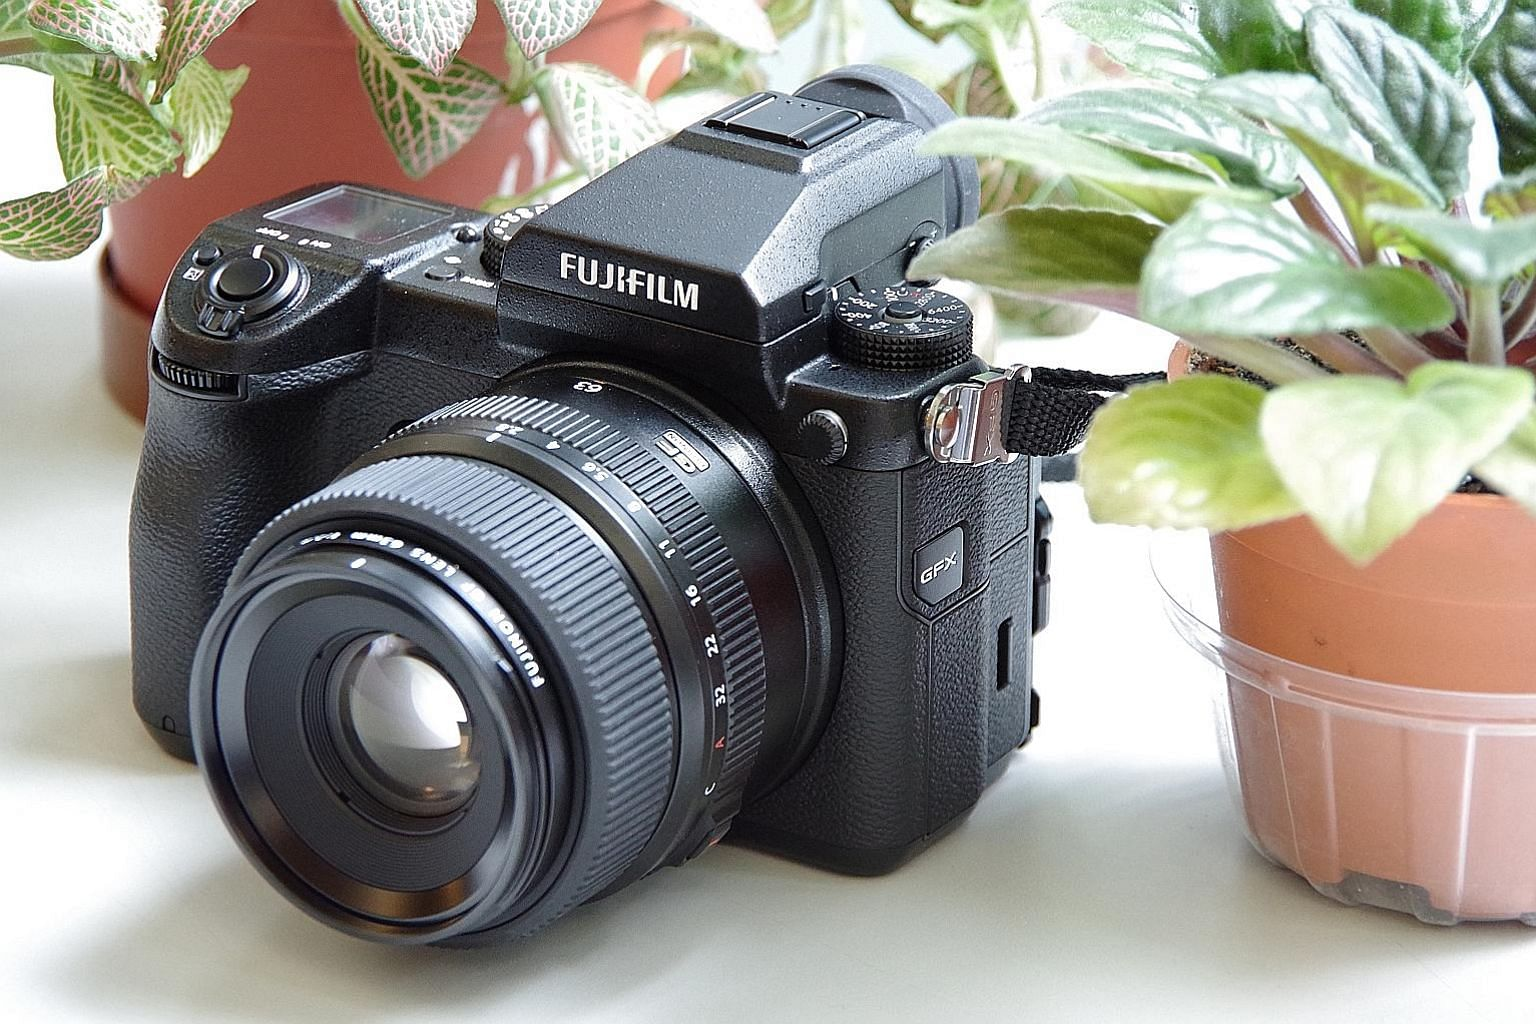 As a digital medium-format camera, the Fujifilm GFX 50S' $10,099 price tag might look staggering but is reasonable as most such cameras cost more than $20,000.